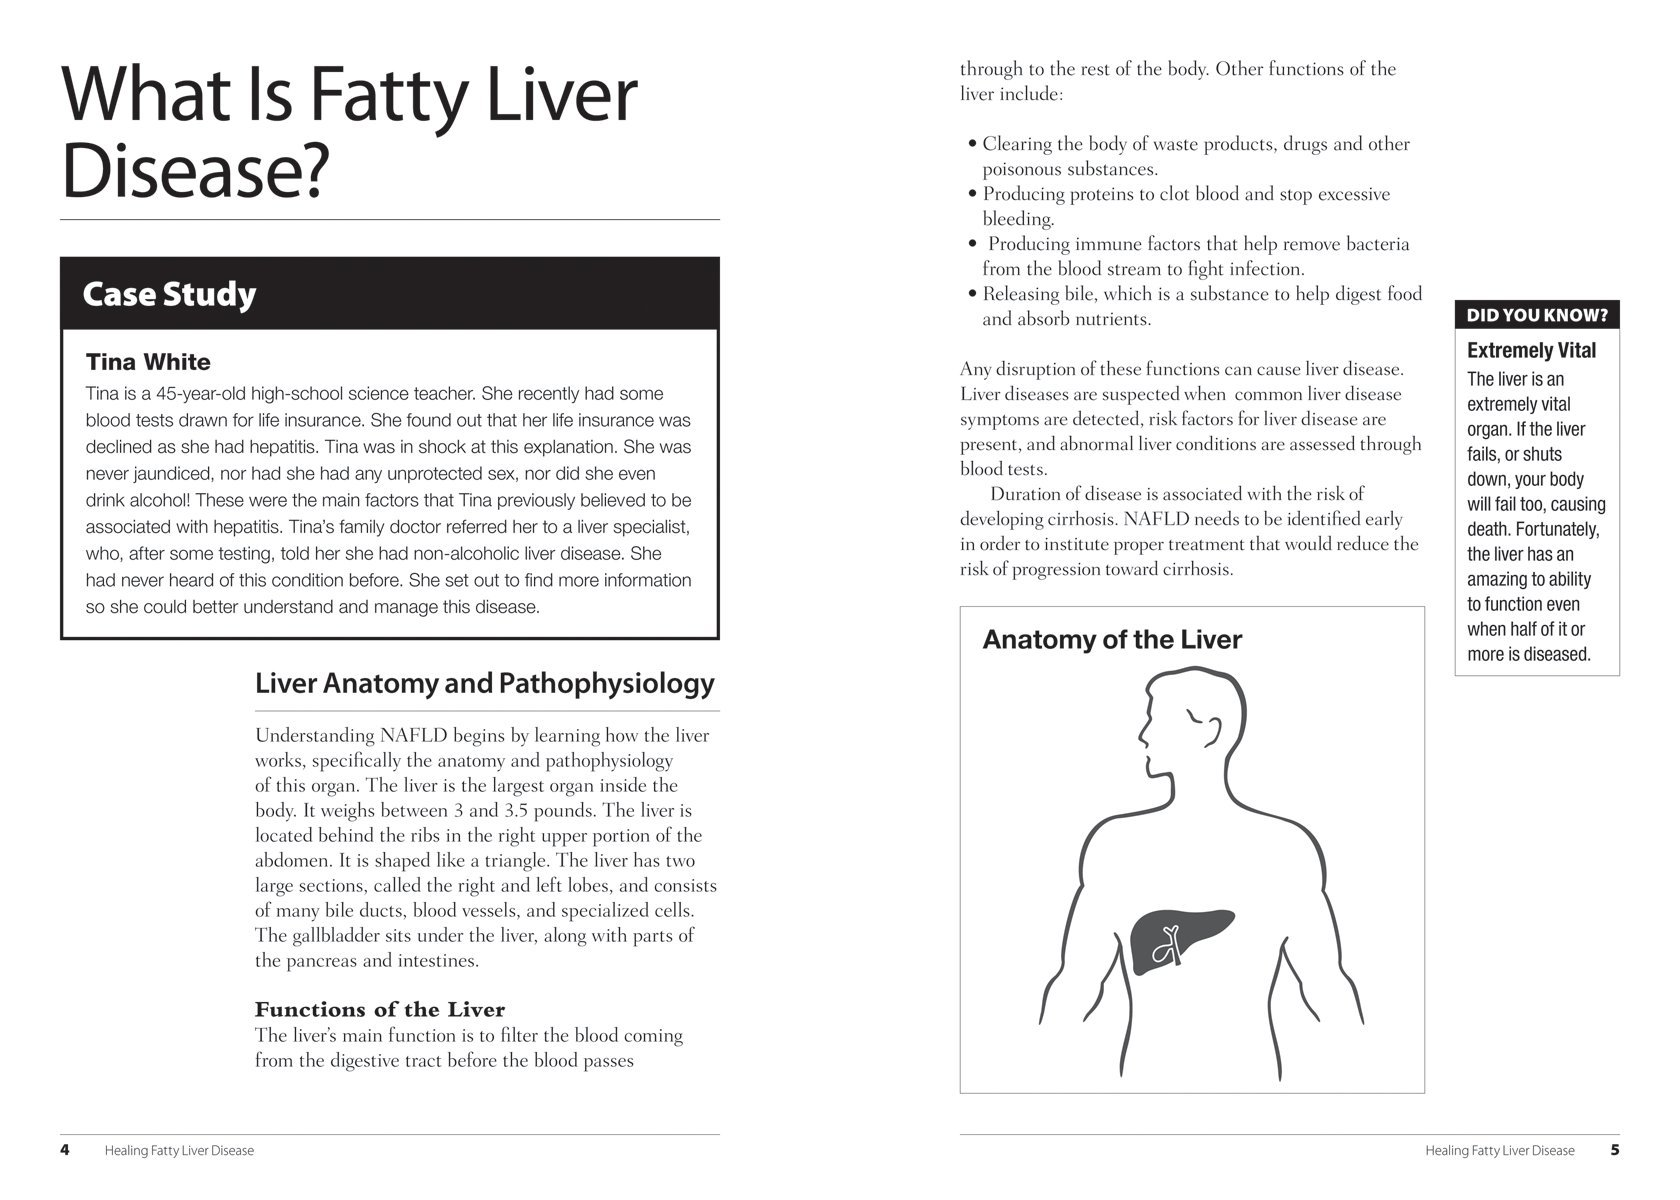 Healing Fatty Liver Disease A Complete Health And Diet Guide